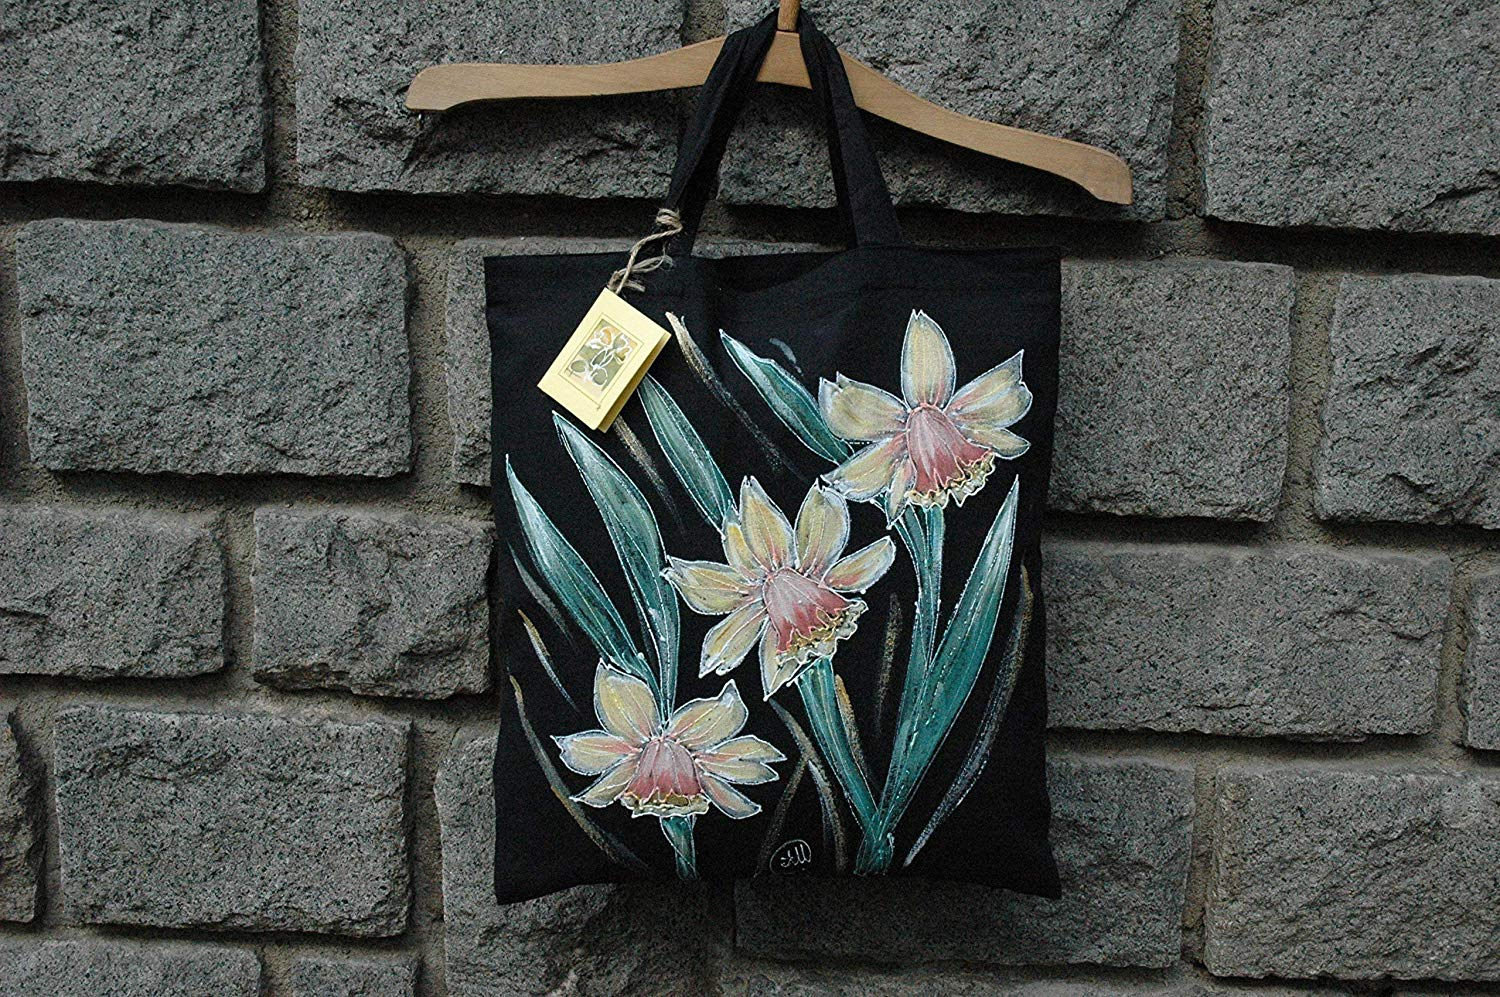 Sale!!!15% Off,Hand Painted Yellow Daffodils Tote Bag,Flower Tote Bag,Daffodils Shopping Bag,Cotton tote bag,Daffodils Gift Bags,Birthday gift Bag,Black Bag,Woman Gifts